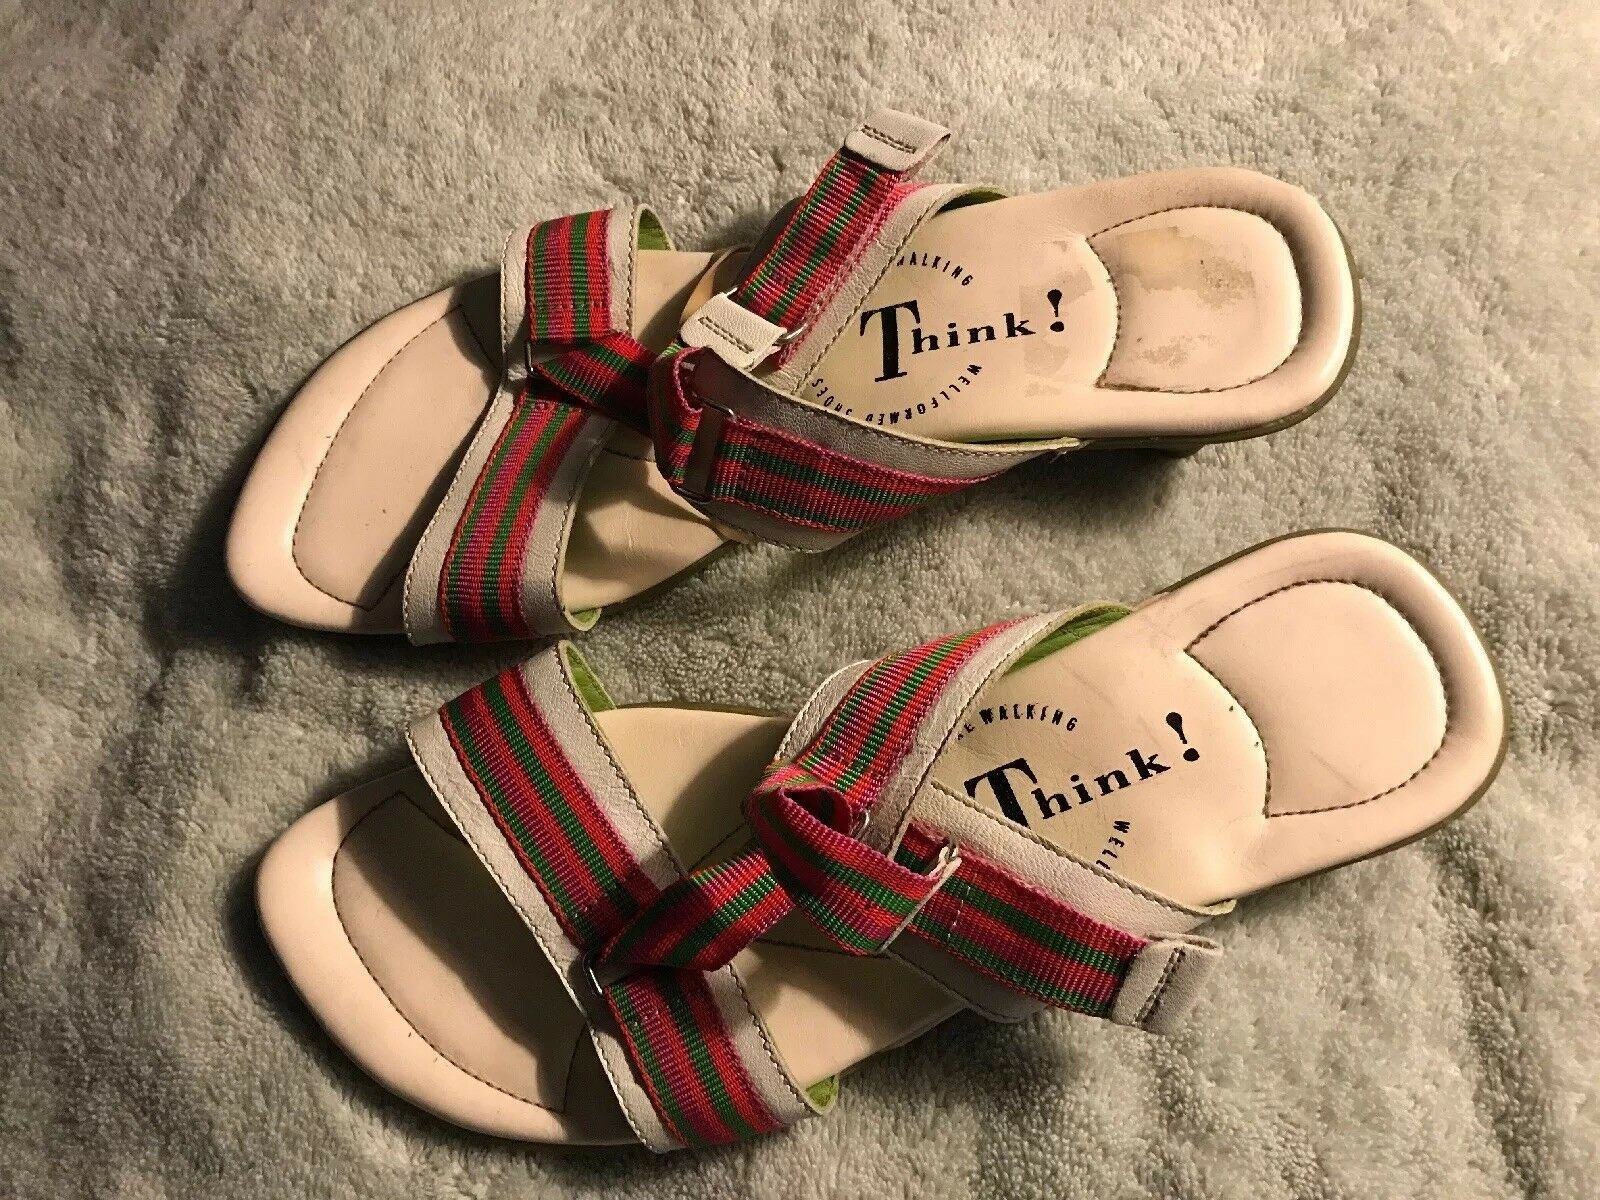 Think Think Think  donna's Sandals Small Heel rosso bianca Dimensione 41 SC8 1c533e